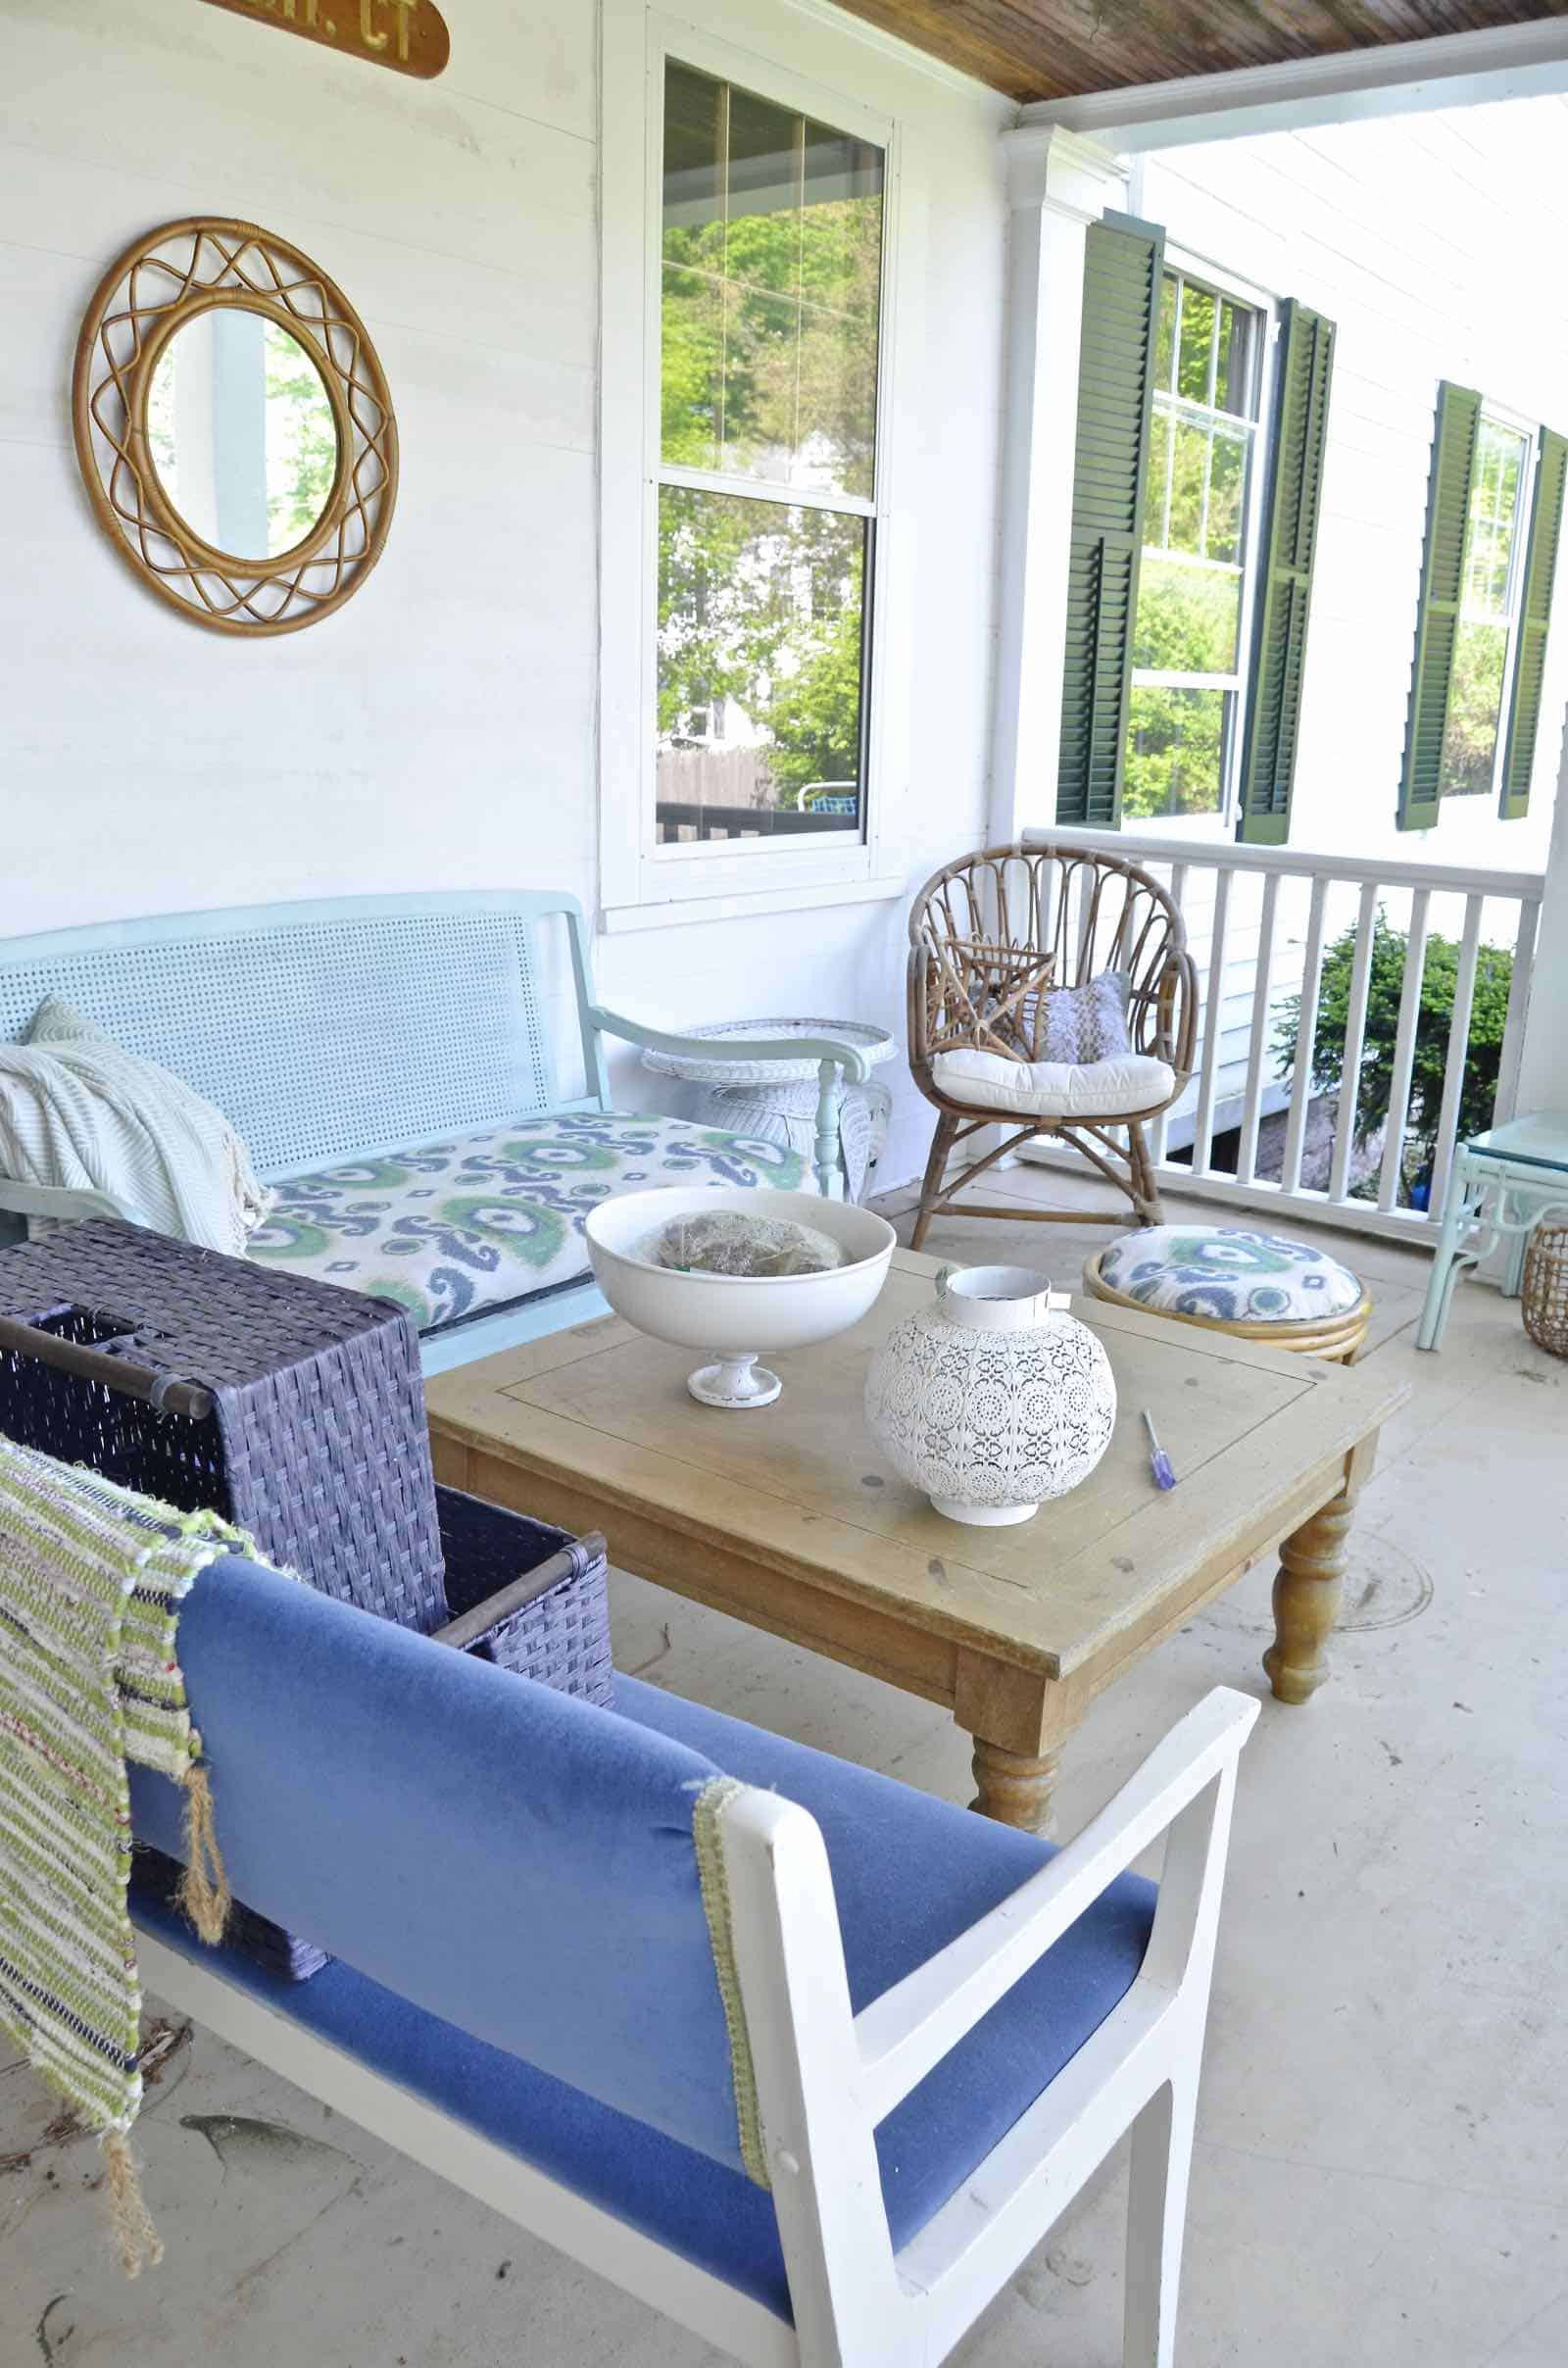 Summer porch refresh... new seating, new accessories, new season!